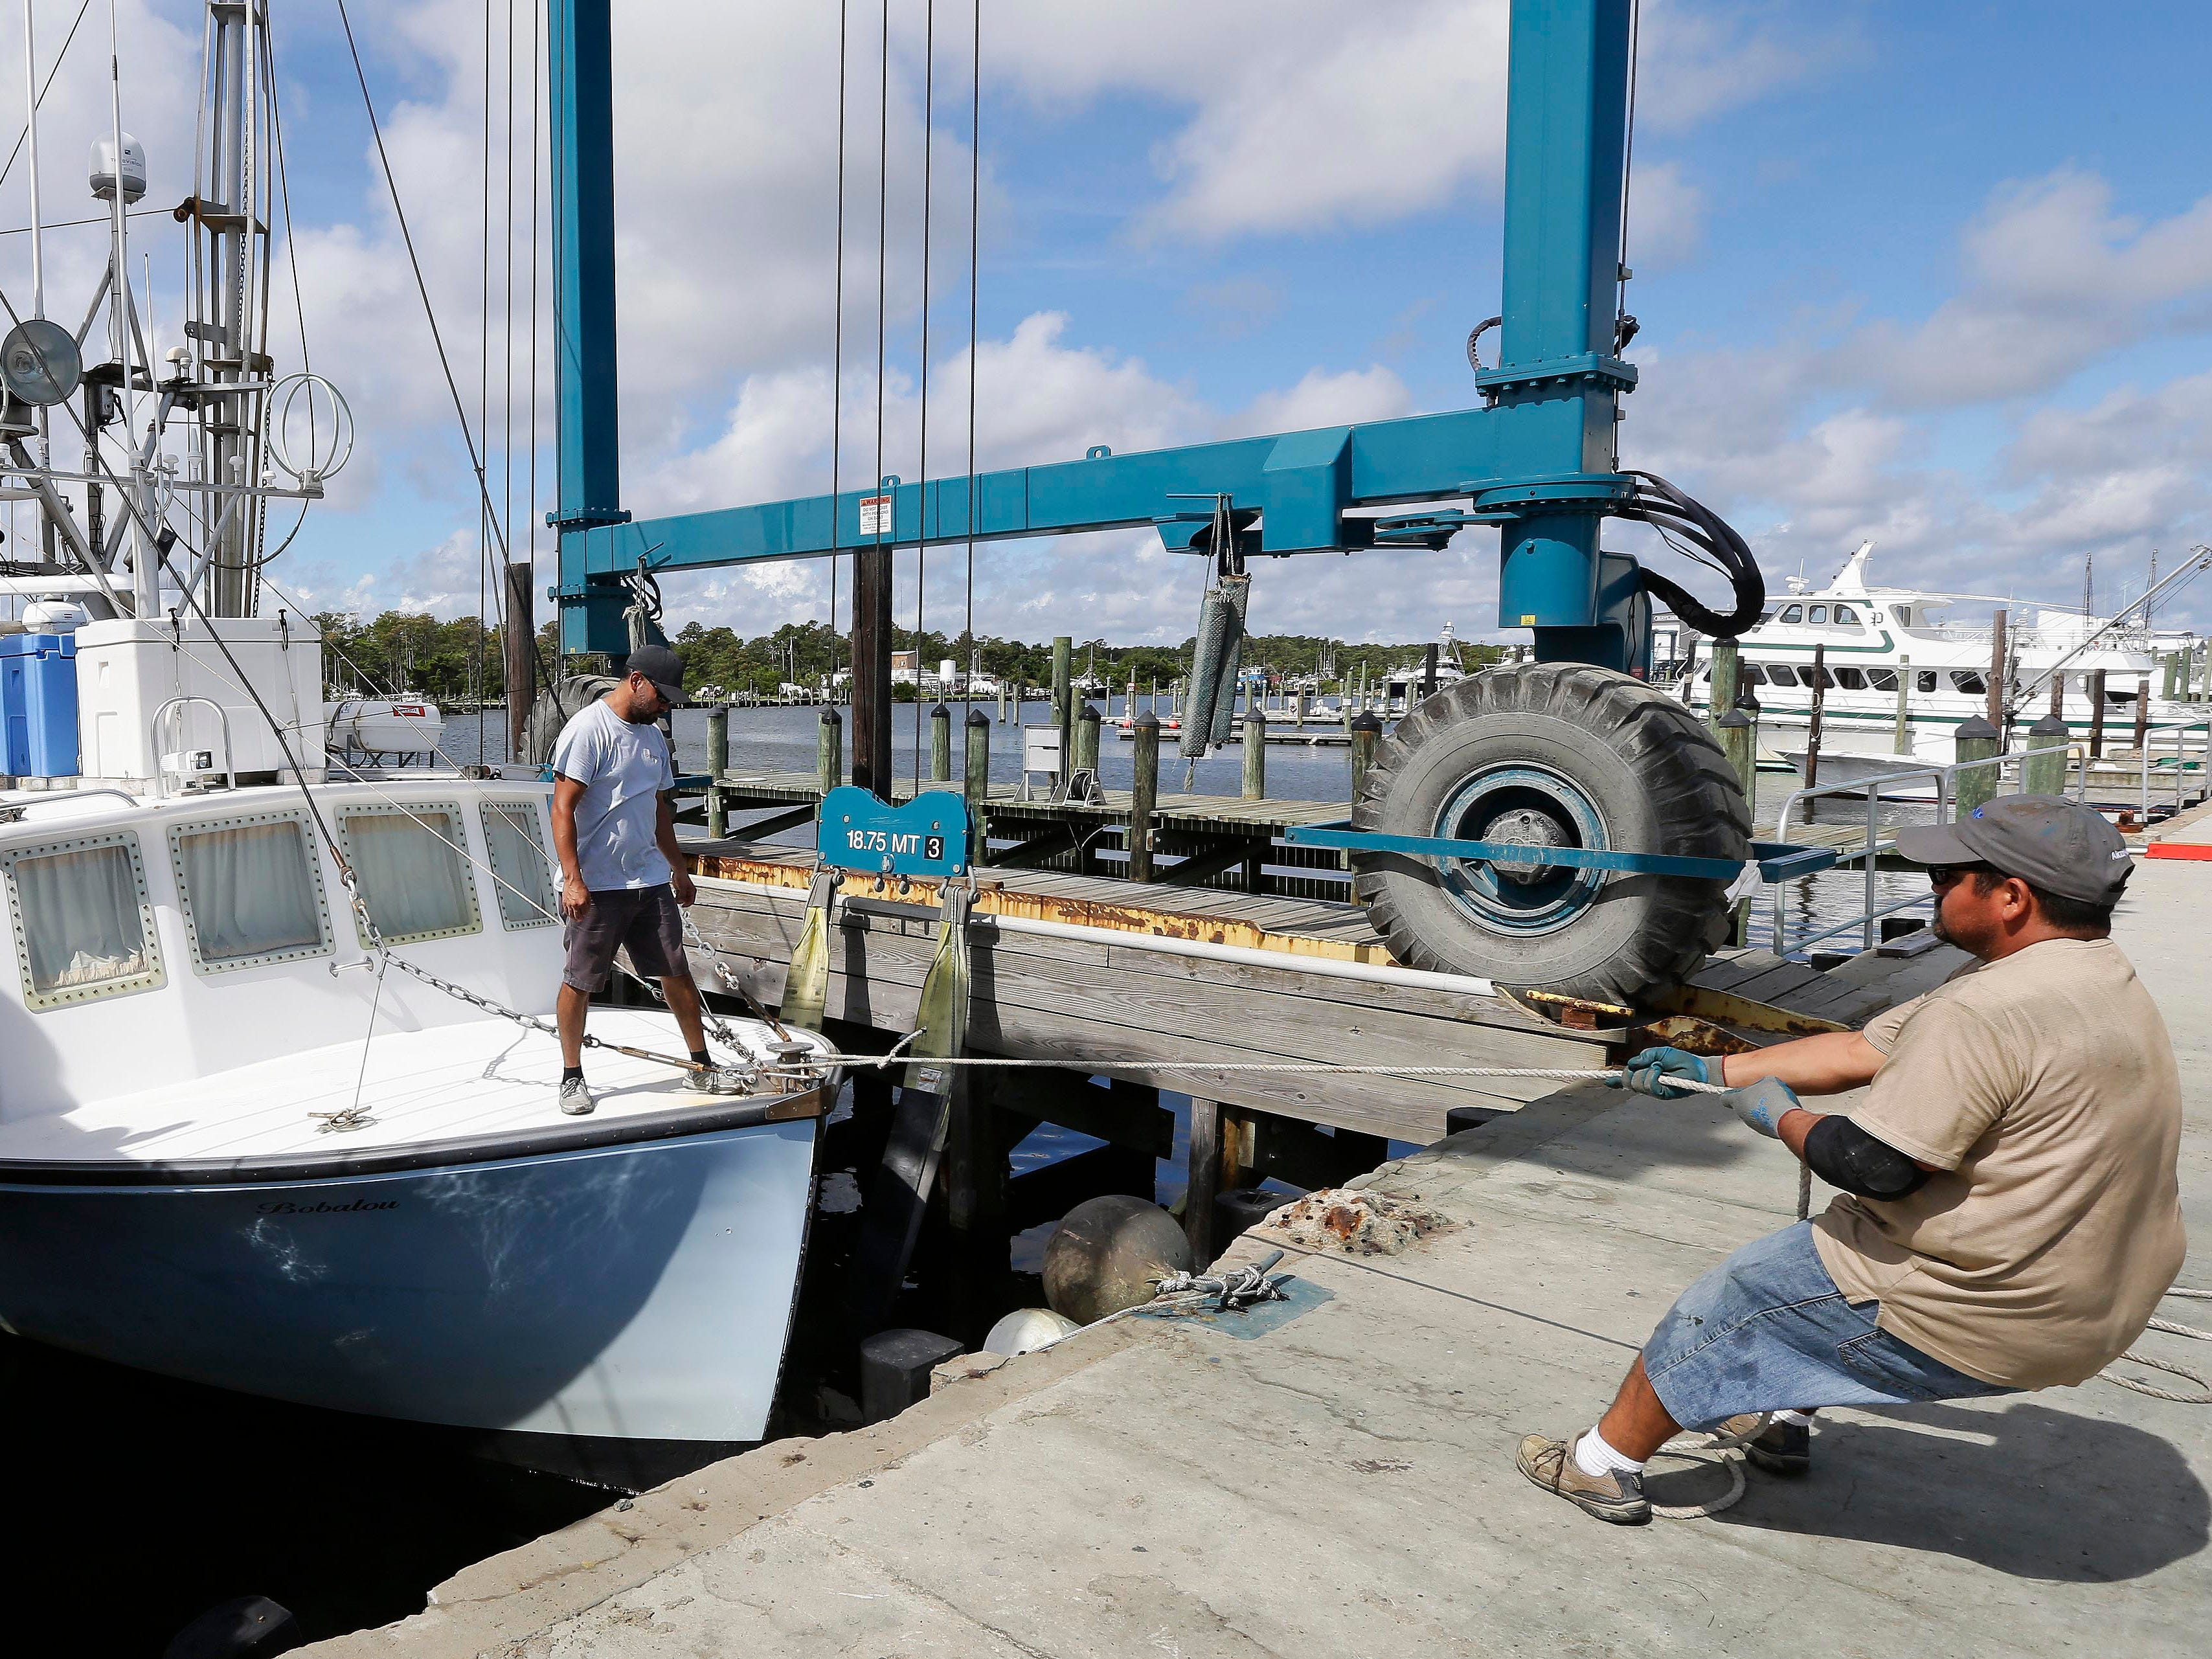 "Workers remove boats from the water in Wanchese Harbor as Hurricane Florence approaches the coast of the Carolinas in Wanchese, N.C., Wednesday, Sept. 12, 2018. The National Weather Service says Hurricane Florence ""will likely be the storm of a lifetime for portions of the Carolina coast."""